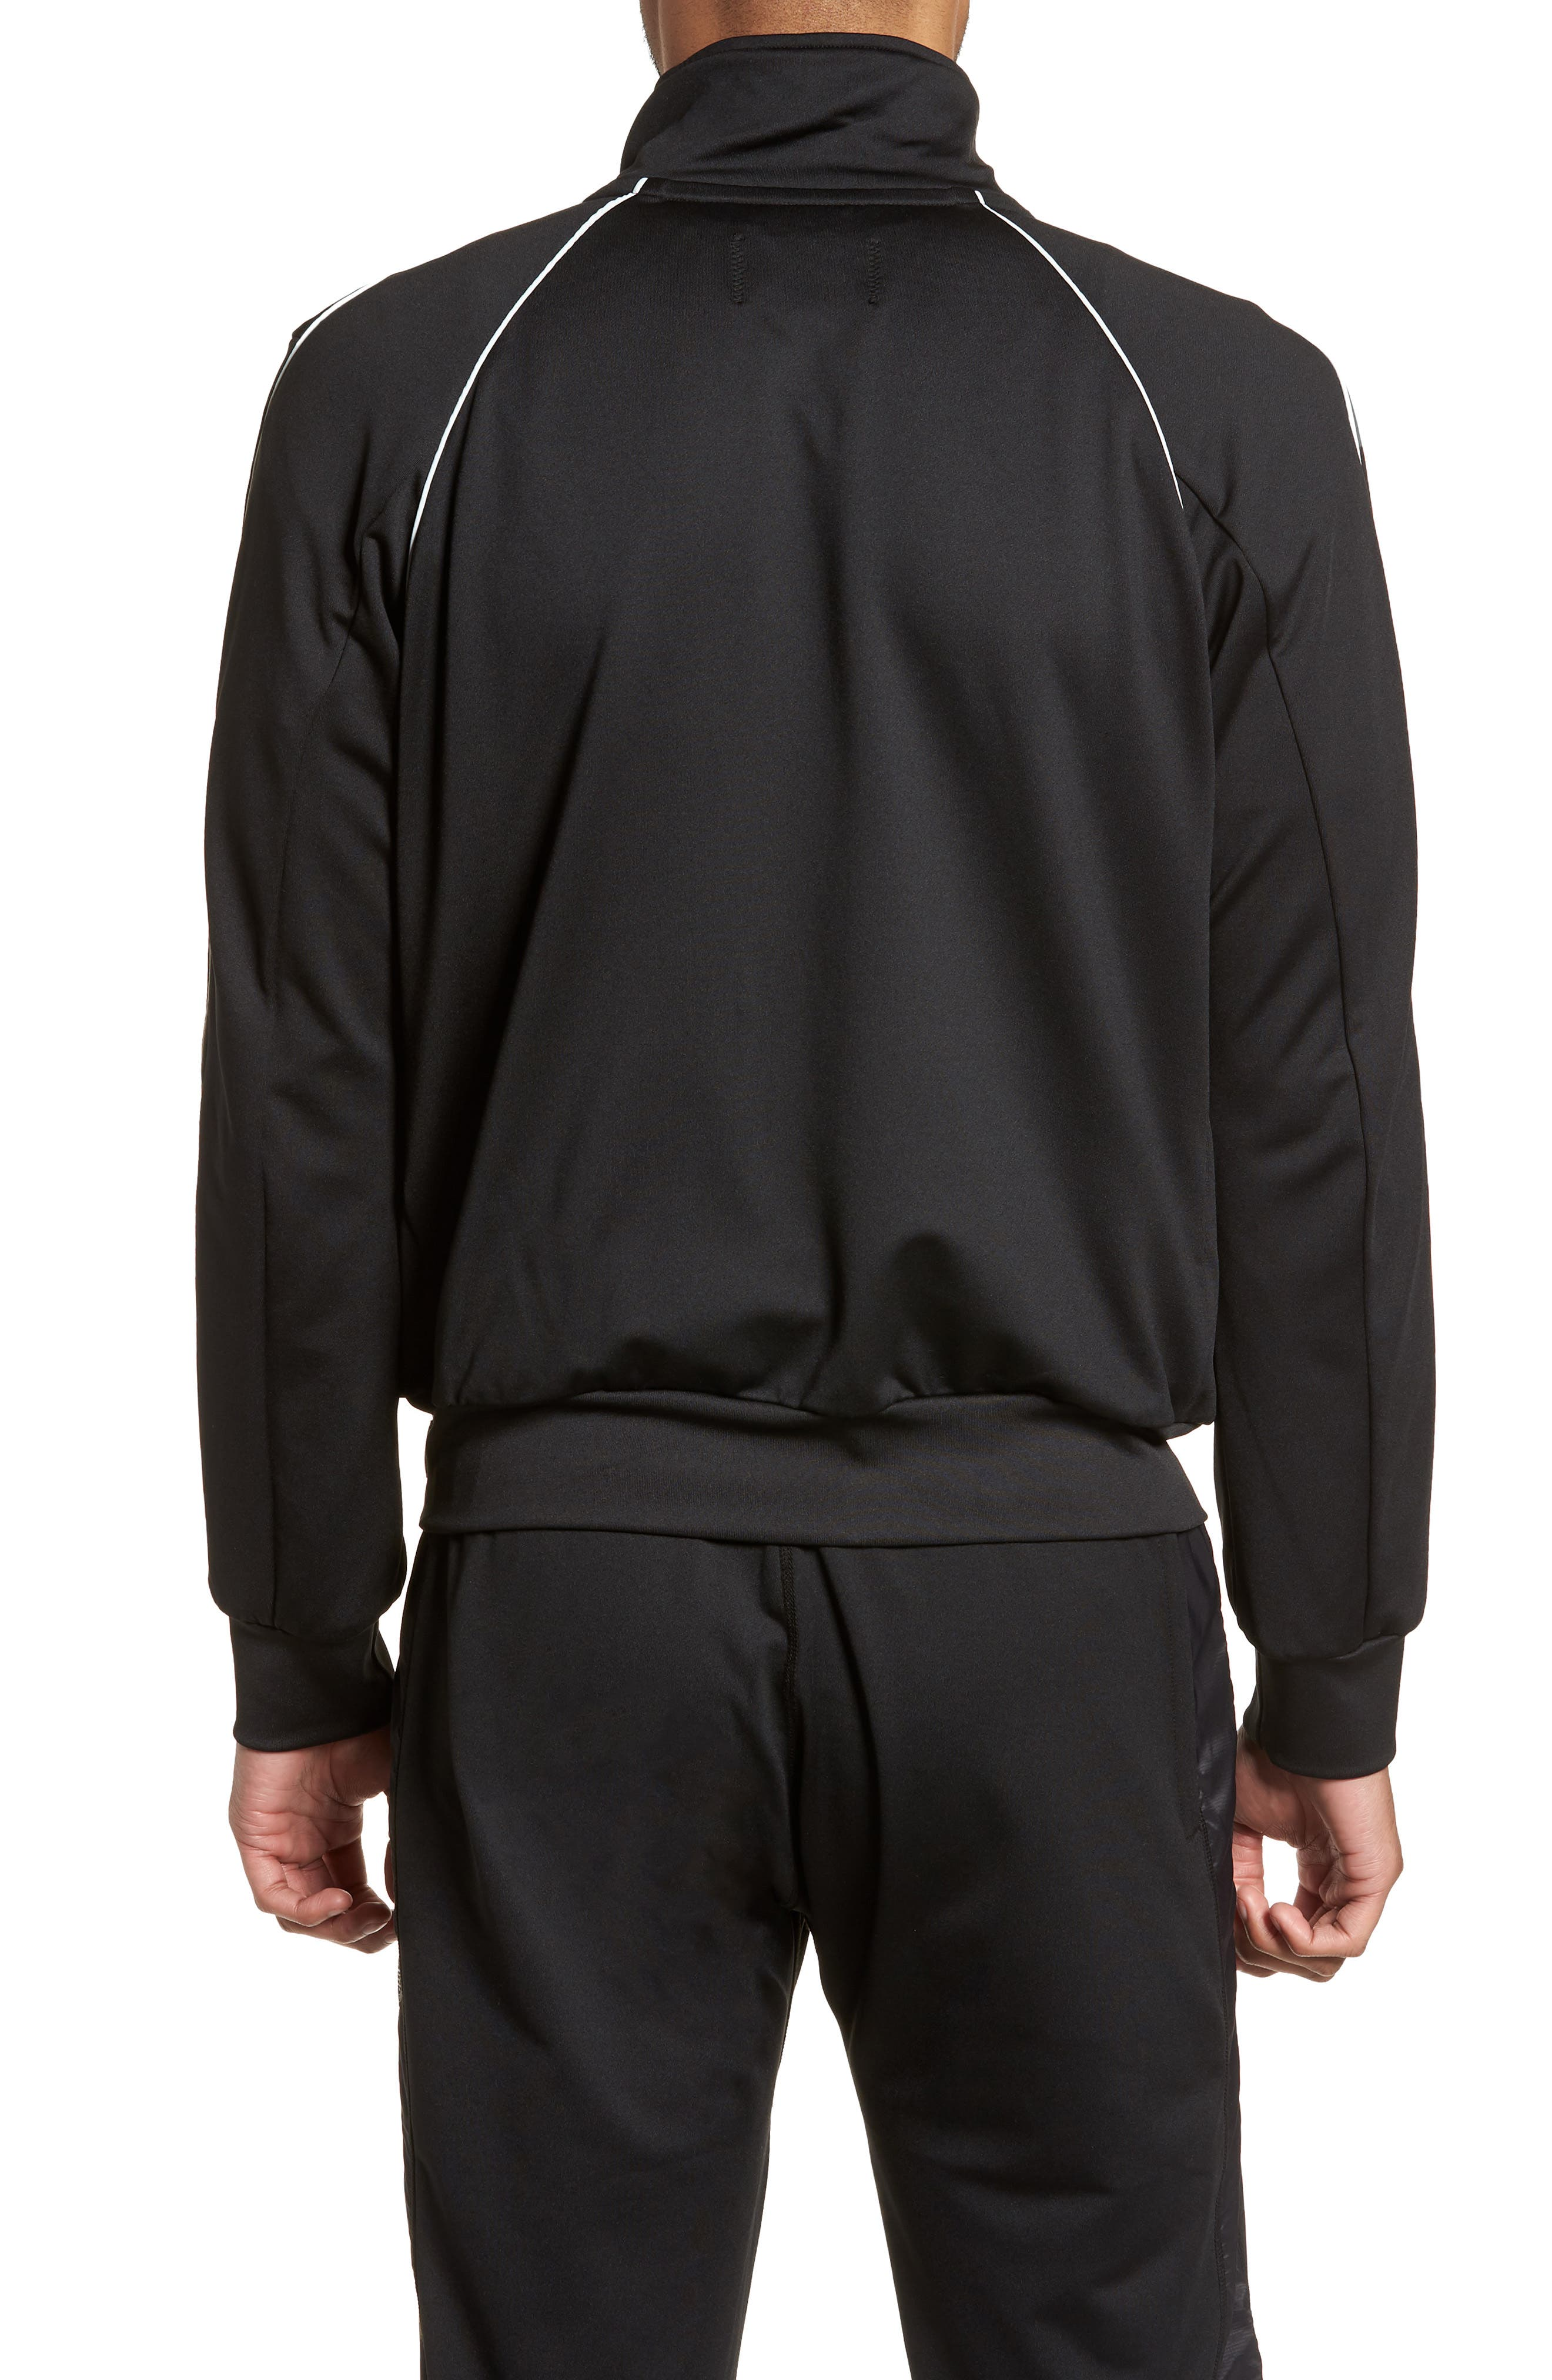 CoolMax<sup>®</sup> Track Jacket,                             Alternate thumbnail 2, color,                             Black